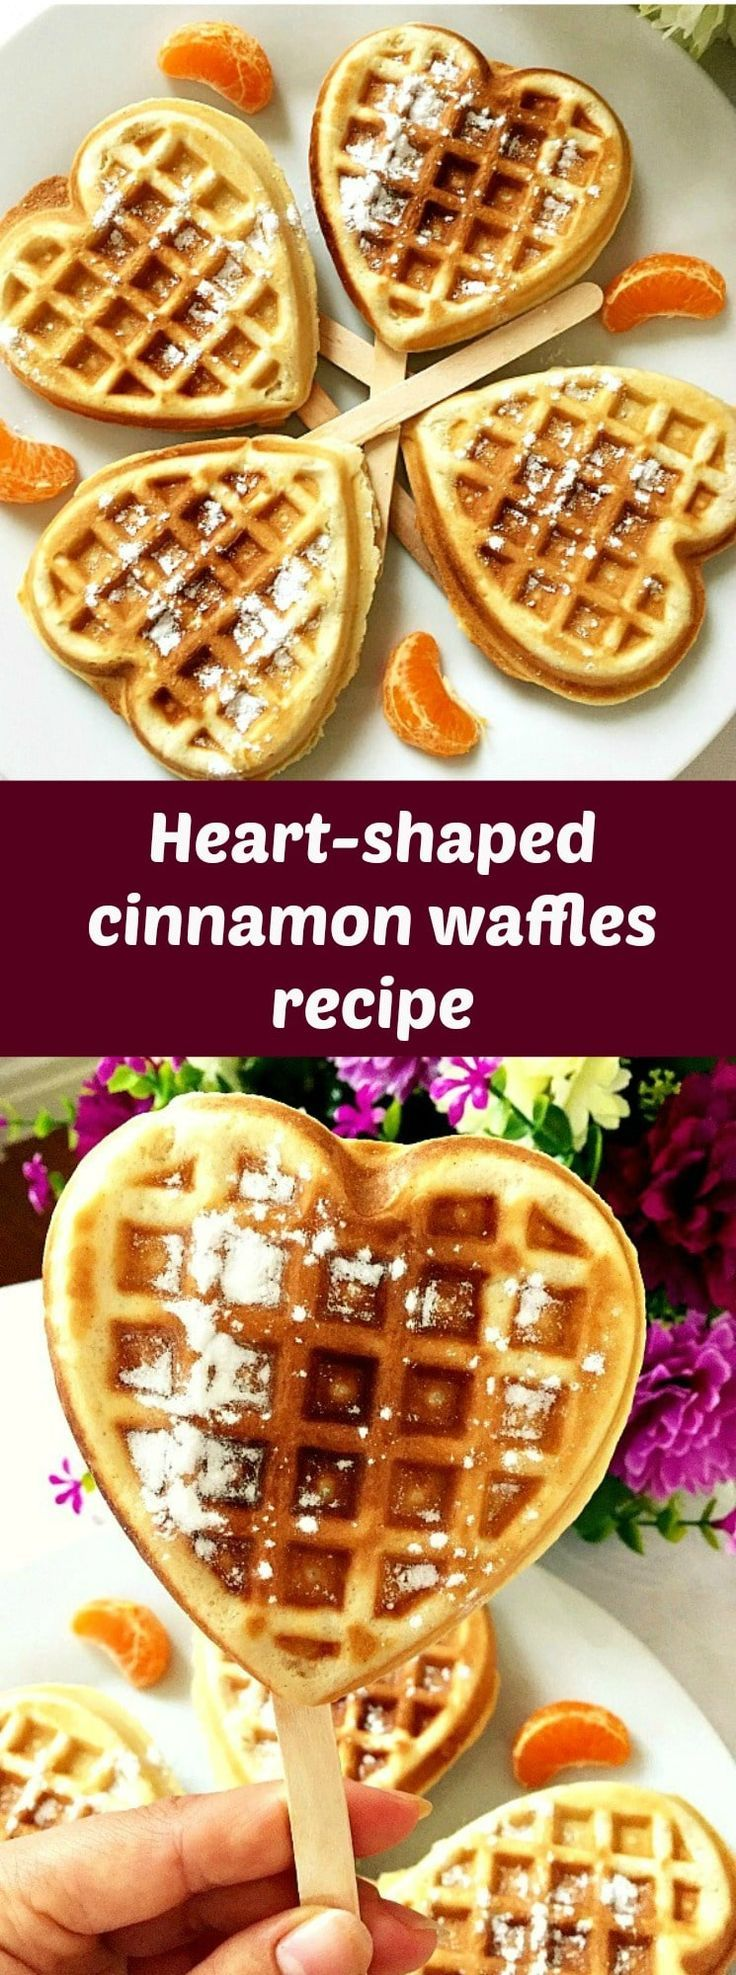 Cinnamon waffles recipe, the perfect homemade treat when you want to indulge yourself without spending money on a ridiculously posh and equally expensive breakfast/brunch in a 5 star restaurant. All you need is a waffle maker, and you won't really break the bank, the price range being more than affordable. #cinnamonwaffles, #waffles, #easybreakfast